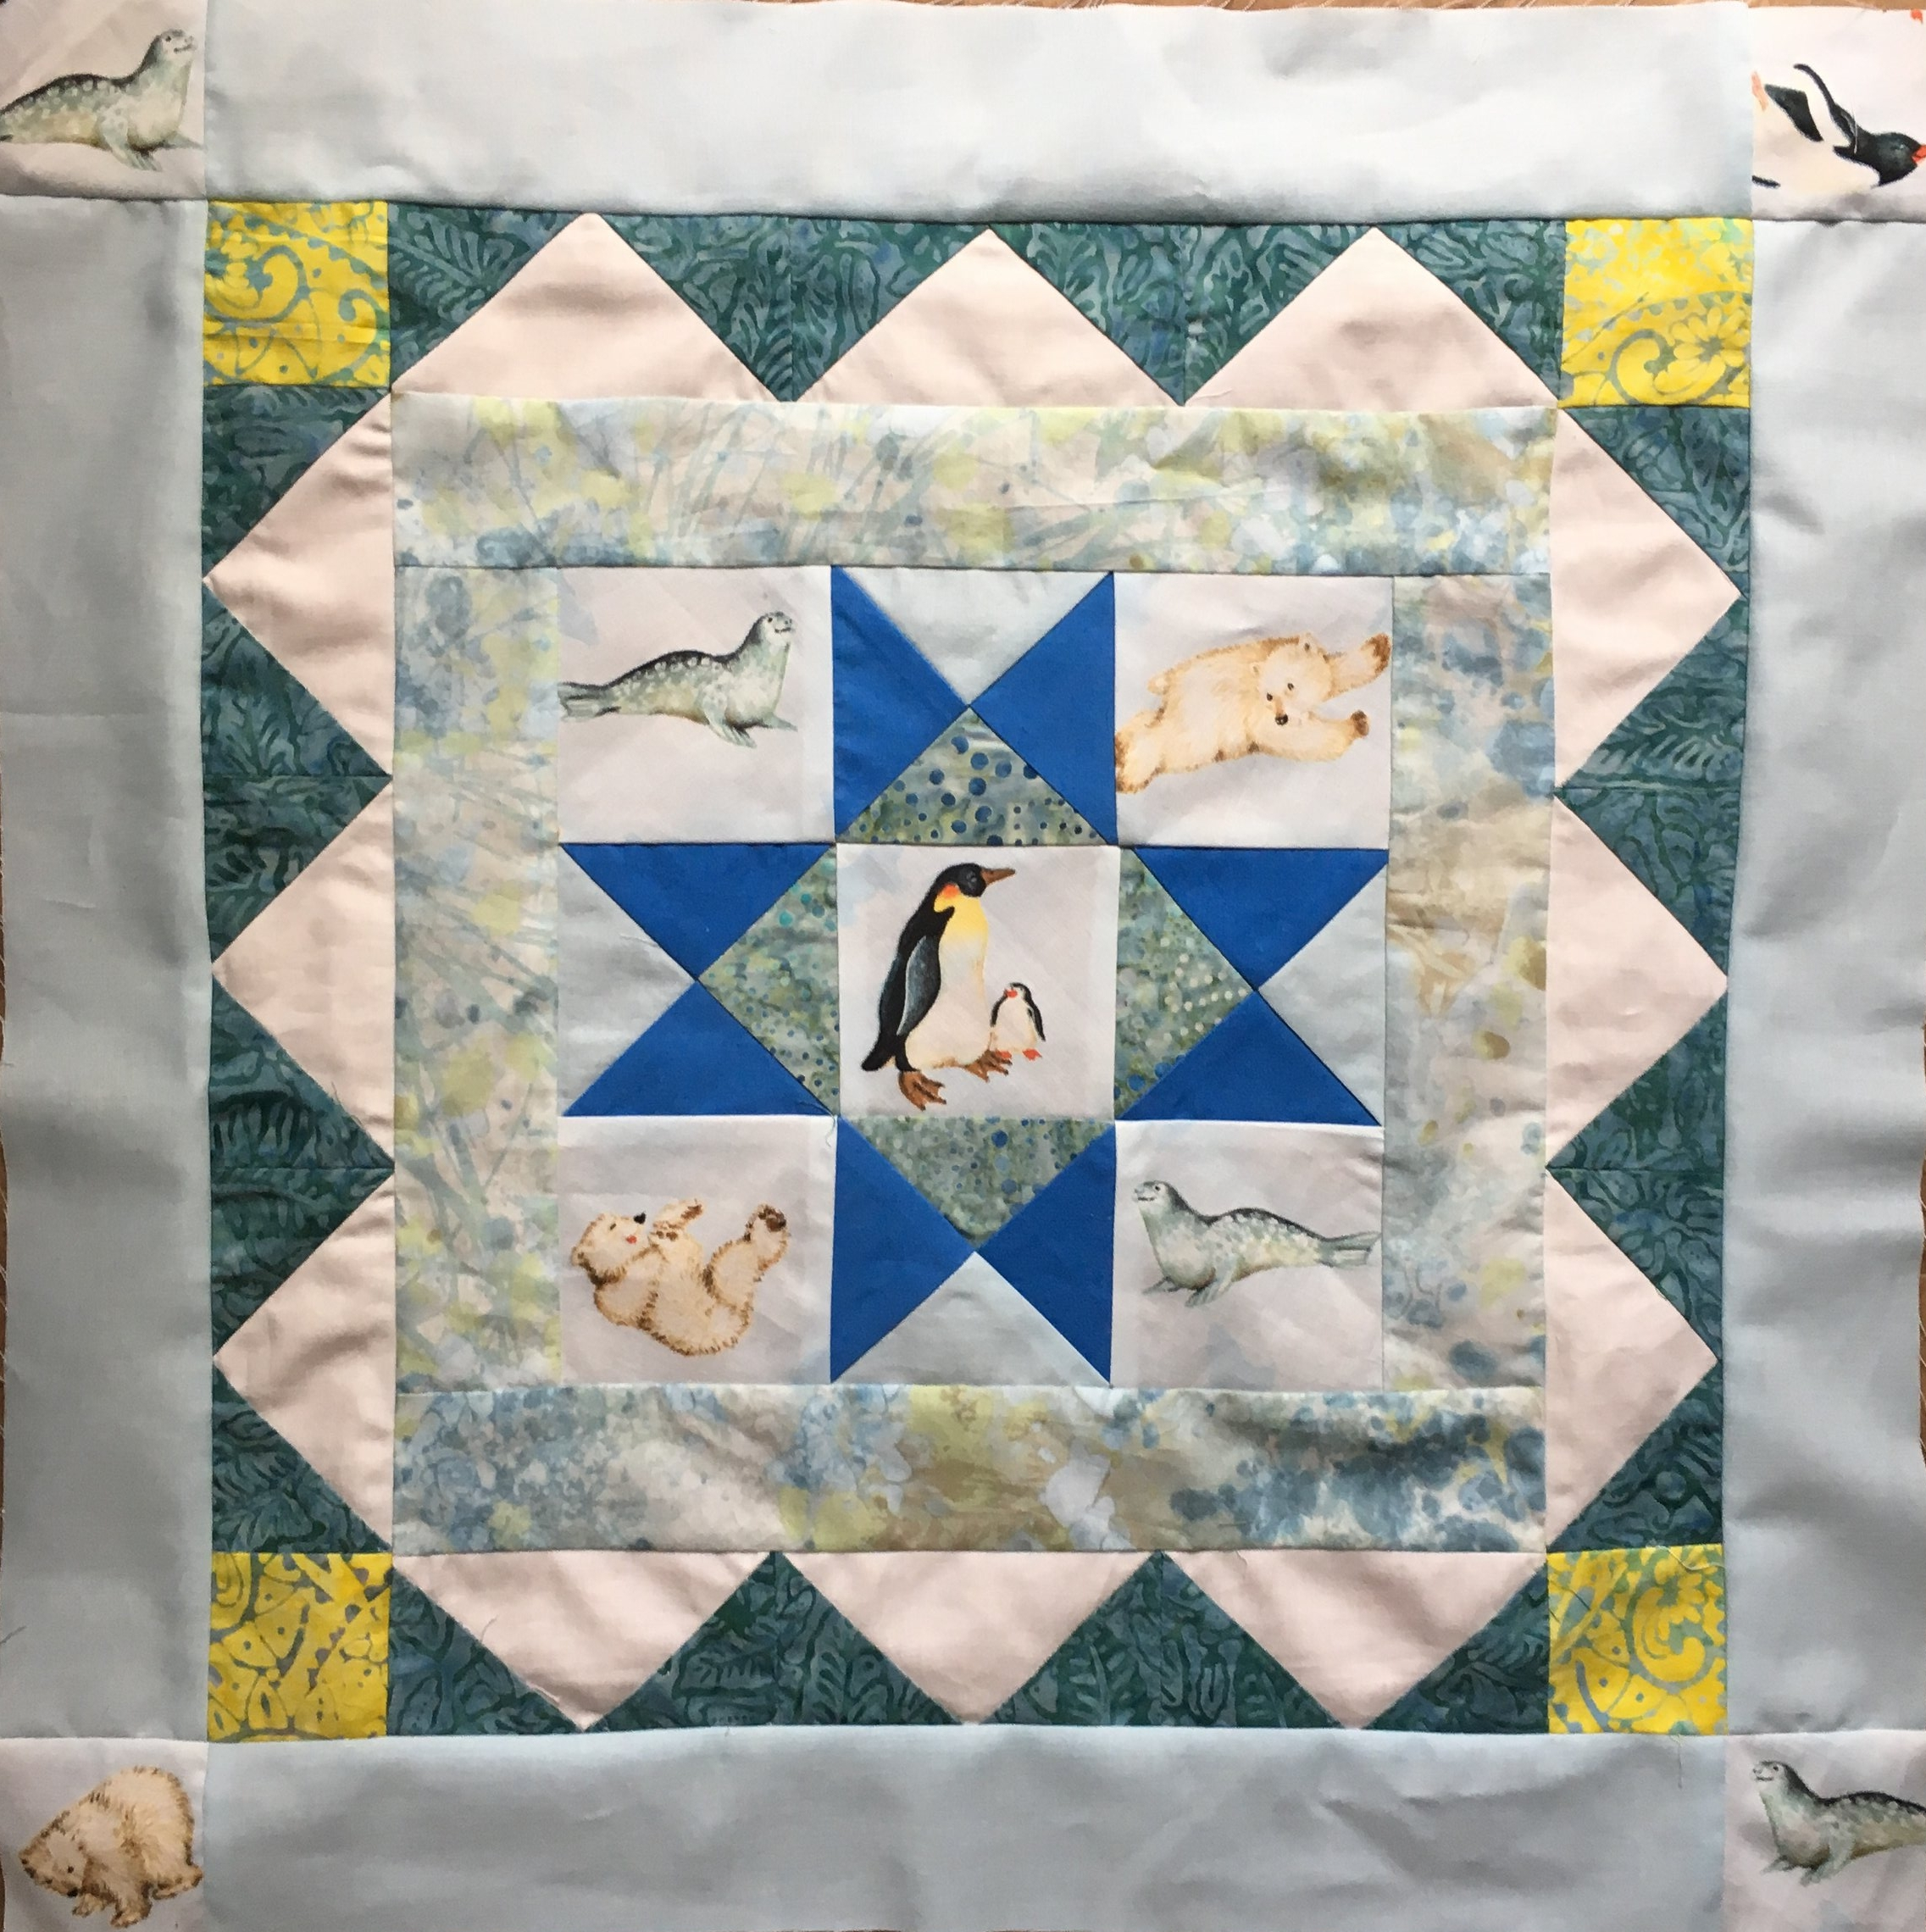 Round 4 of the Polar Medallion Quilt